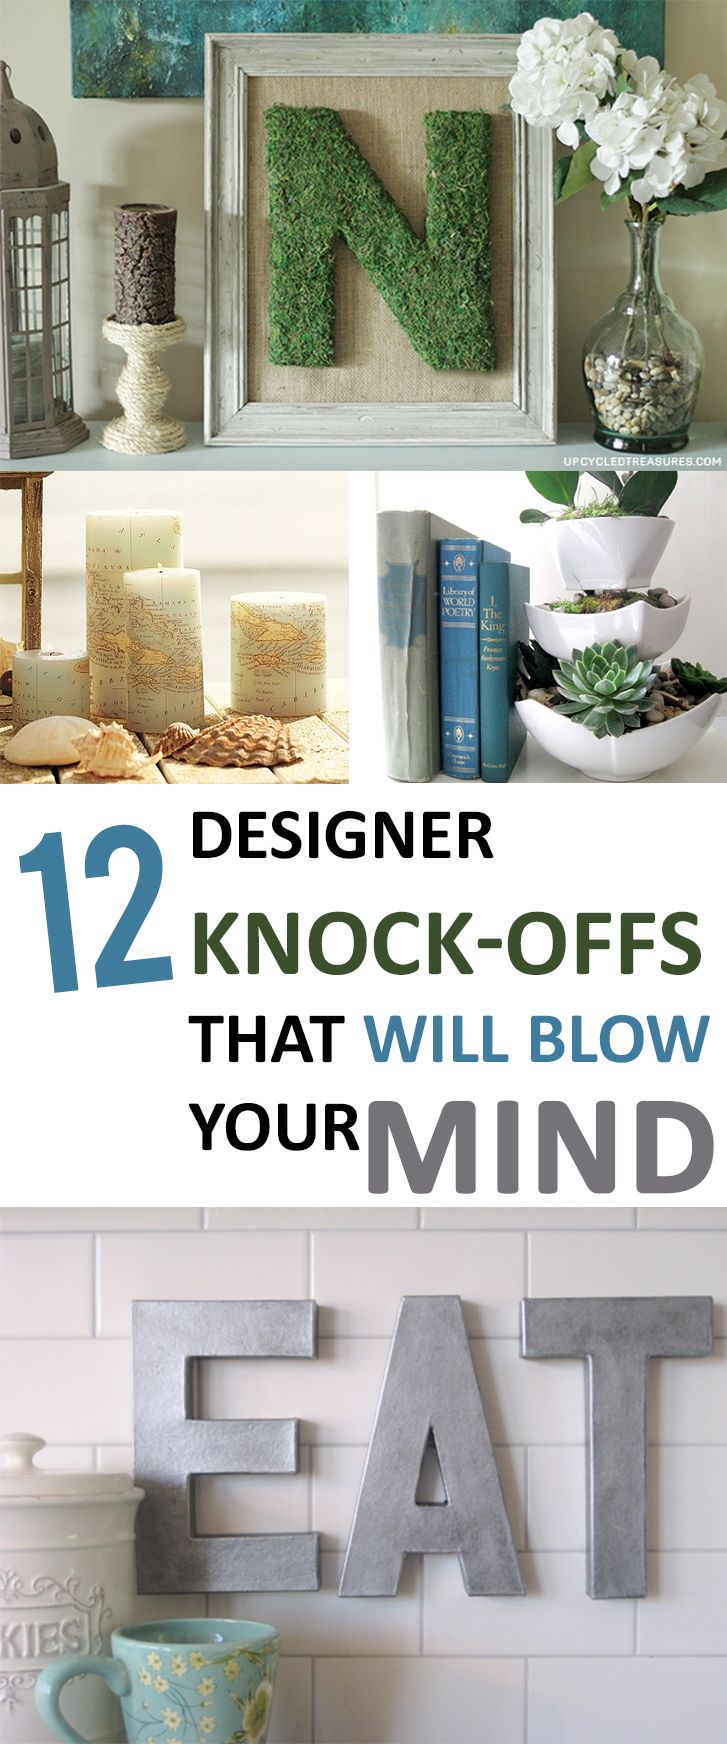 3375 best to make images on Pinterest | Home ideas, Creative ideas ...